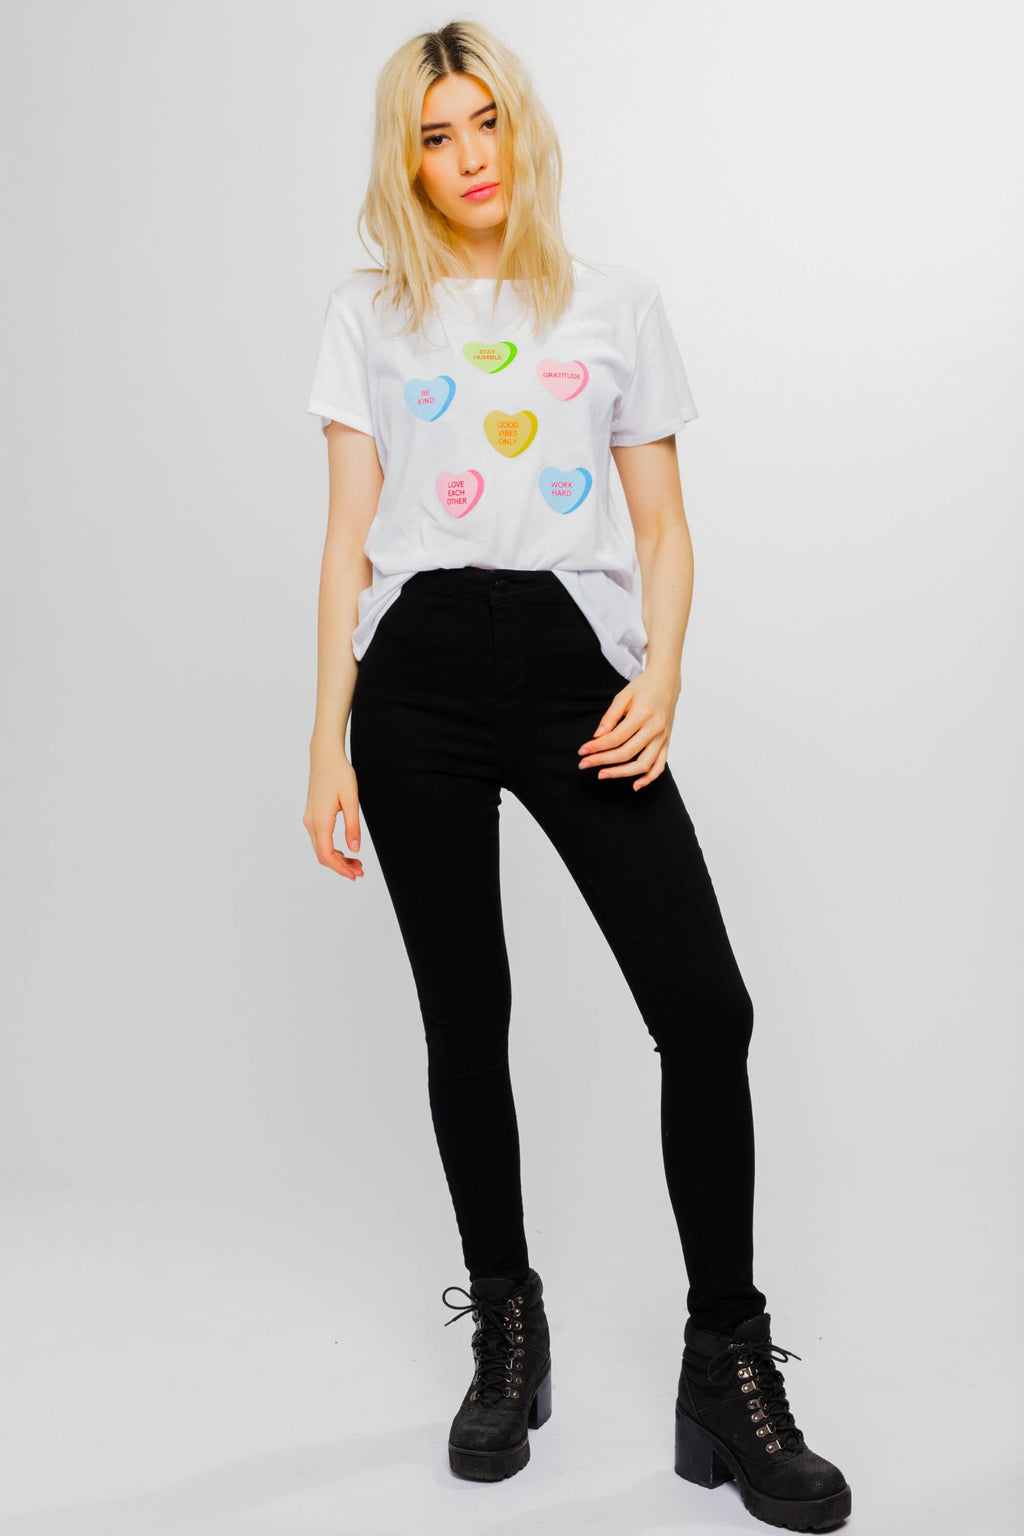 Candy Hearts Loose Tee